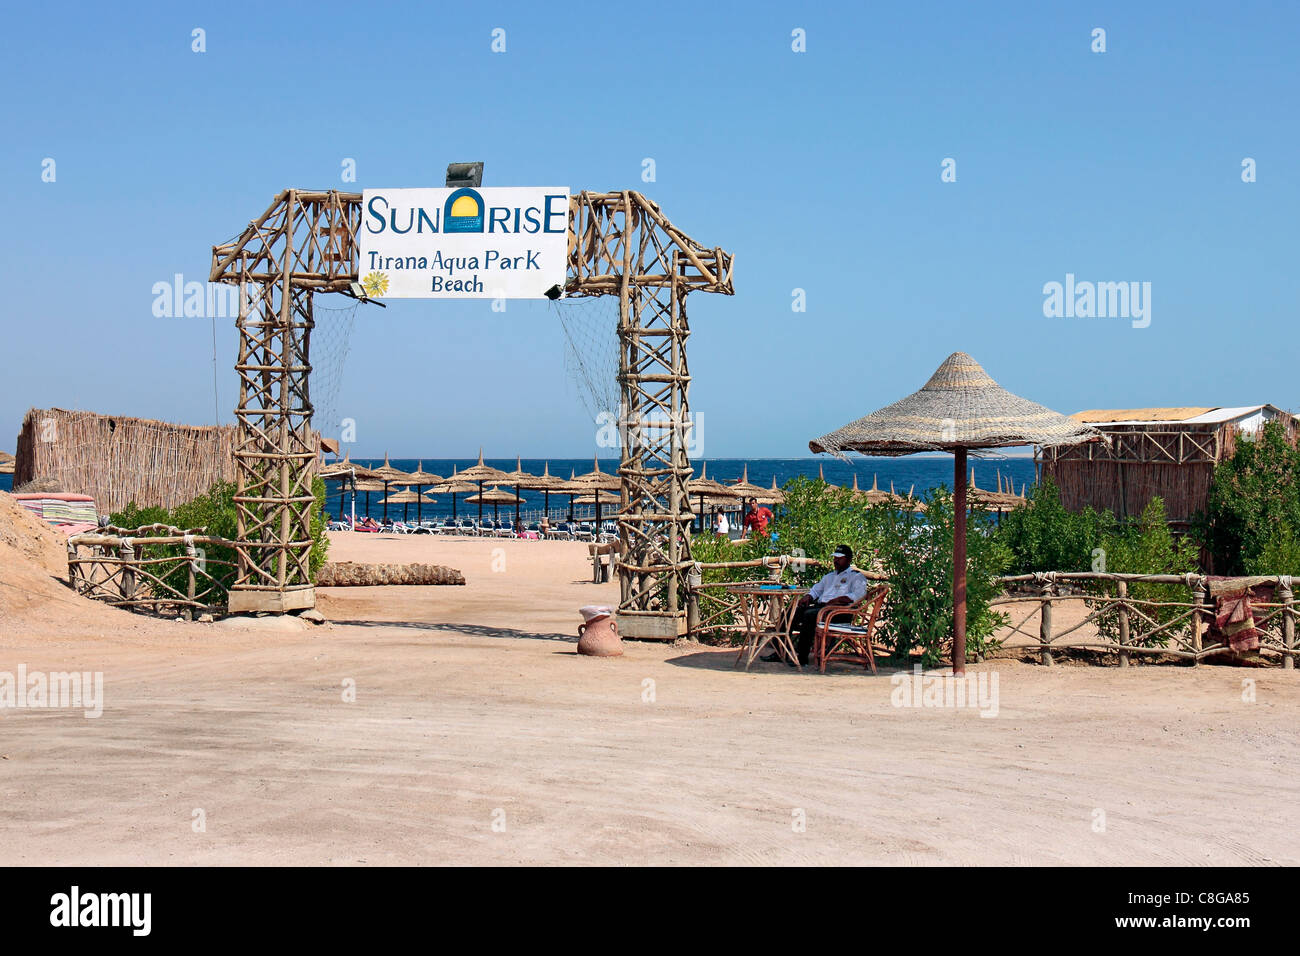 Entrance to Sunrise Tirana Hotel's beach on the Red Sea, Sharm El Sheikh, Egypt - Stock Image